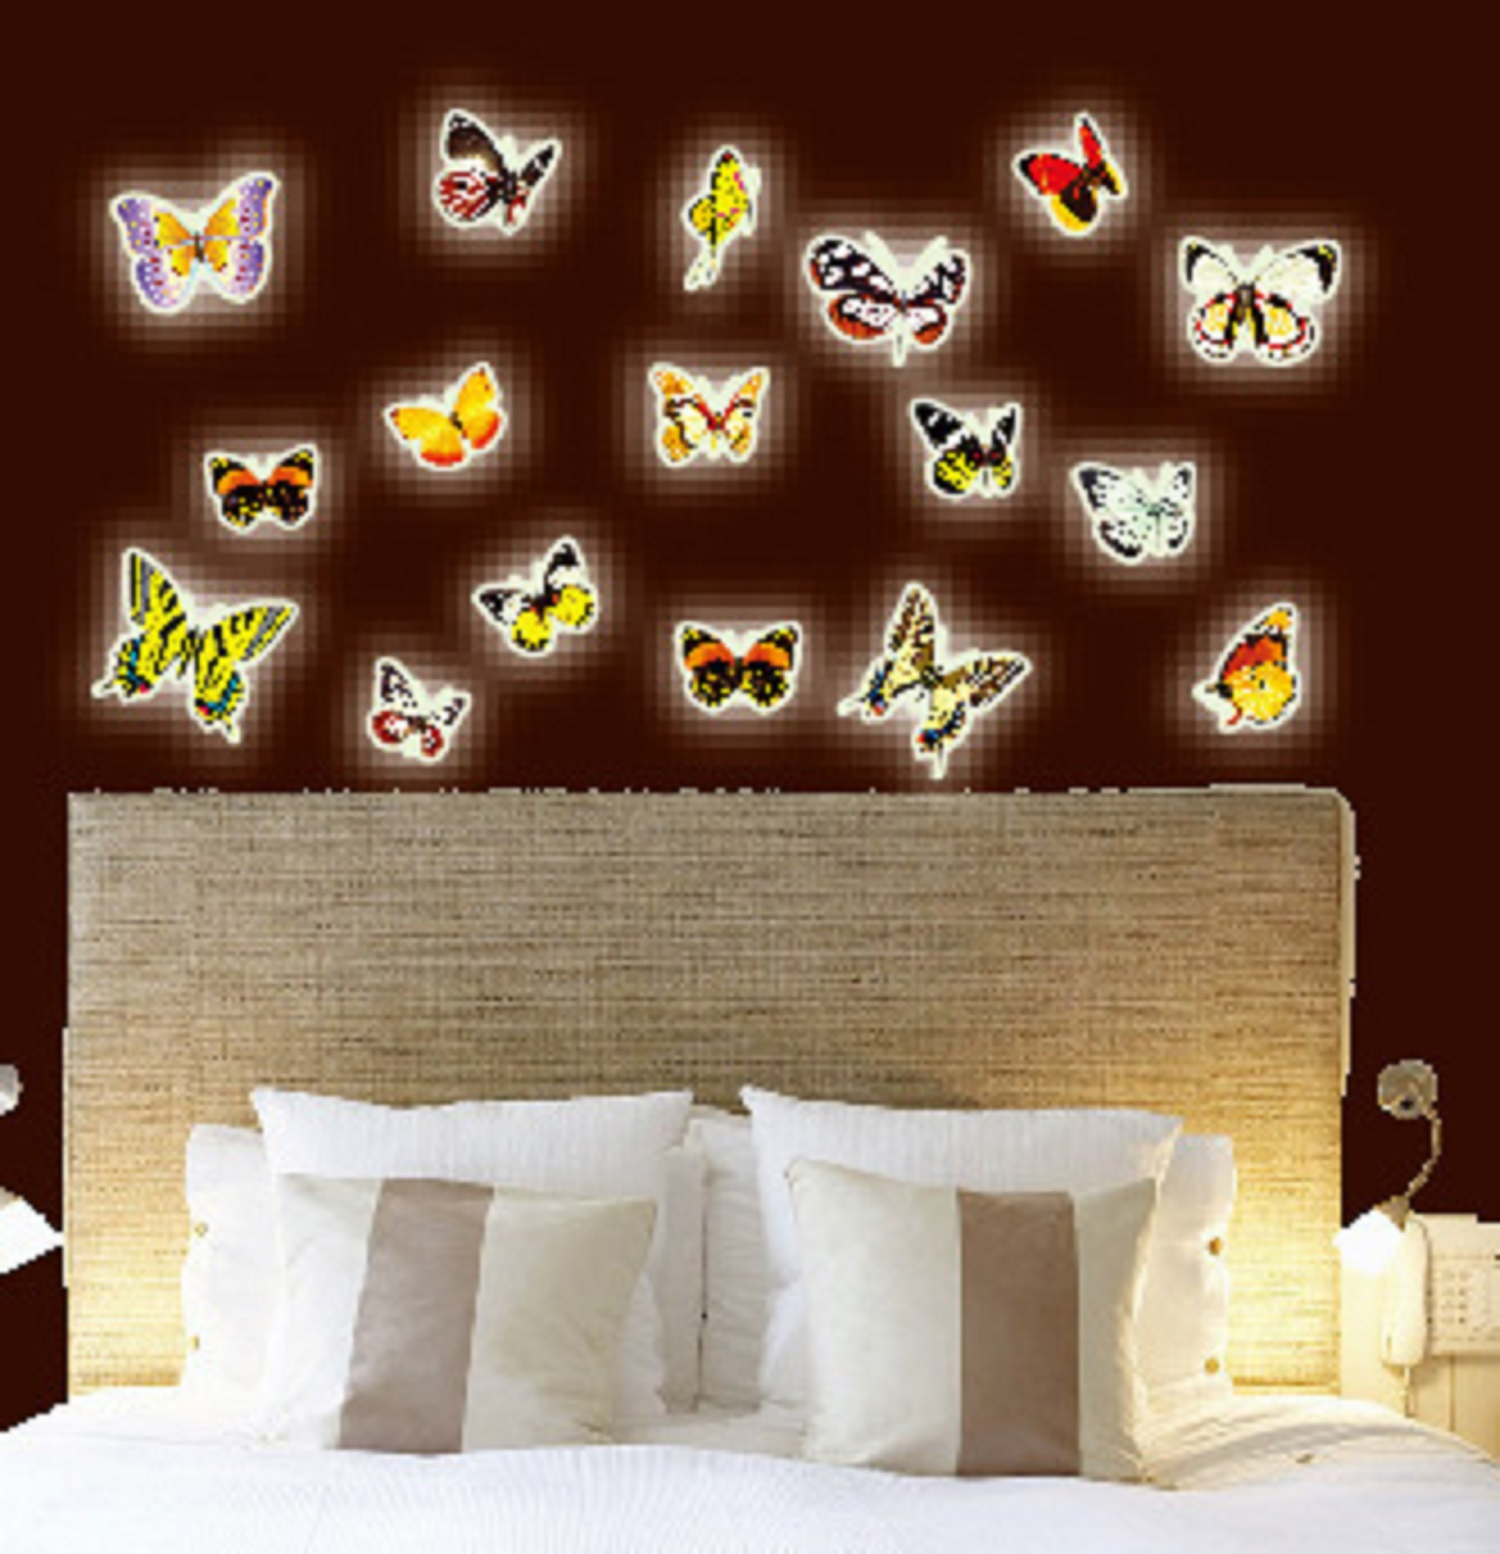 radium stickers for wall online india buy jaamso royals radium butterflies glow in dark wall sticker 21 cm x 29 7 cm at 48 off online india at kraftly y0bura21444qie052560